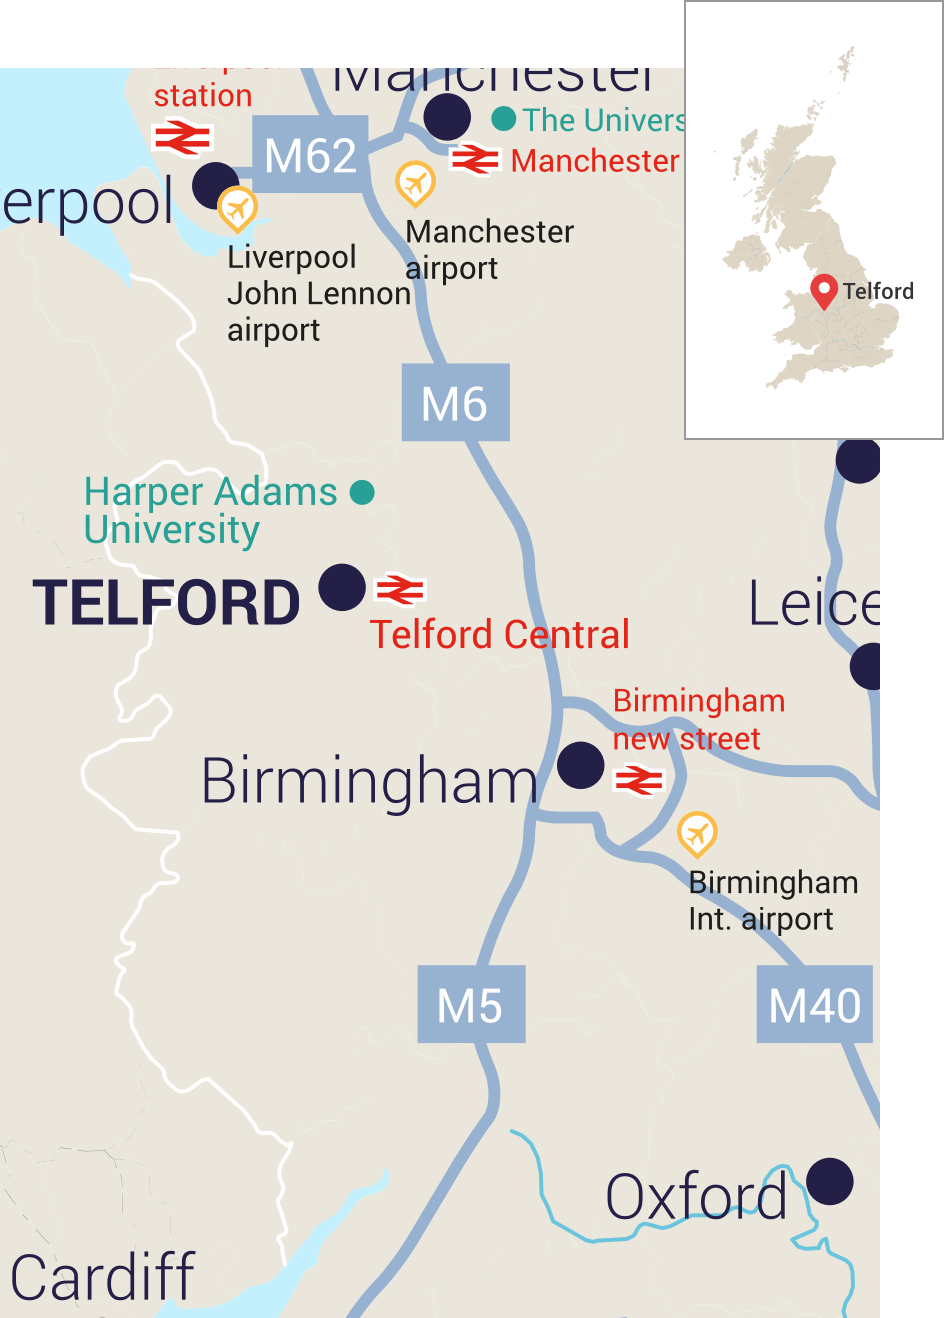 Map of West Midlands with main transport links